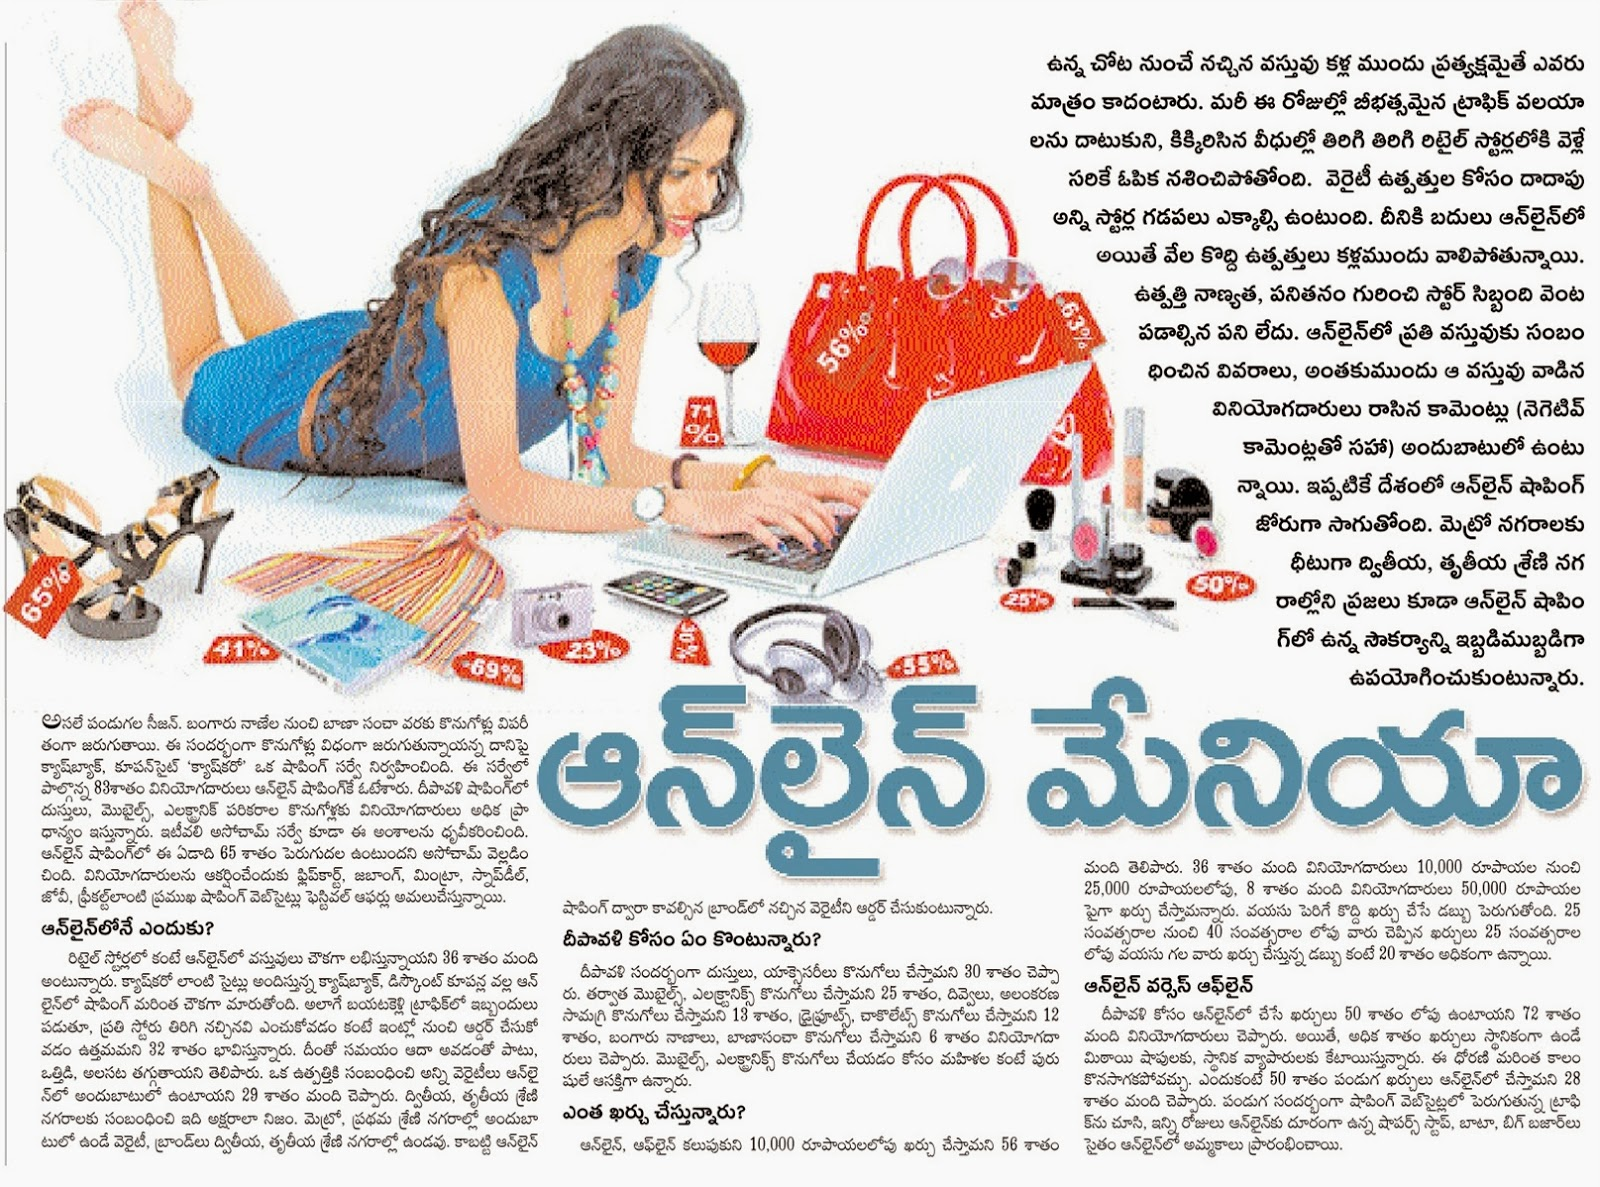 andhrajyothy e paper Abn andhra jyothi, abn andhra jyothi live, abn andhra jyothi streaming,andhra jyothi live,live tv channels in telugu,telugu tv channels live, abn andhra jyothi broad costing.